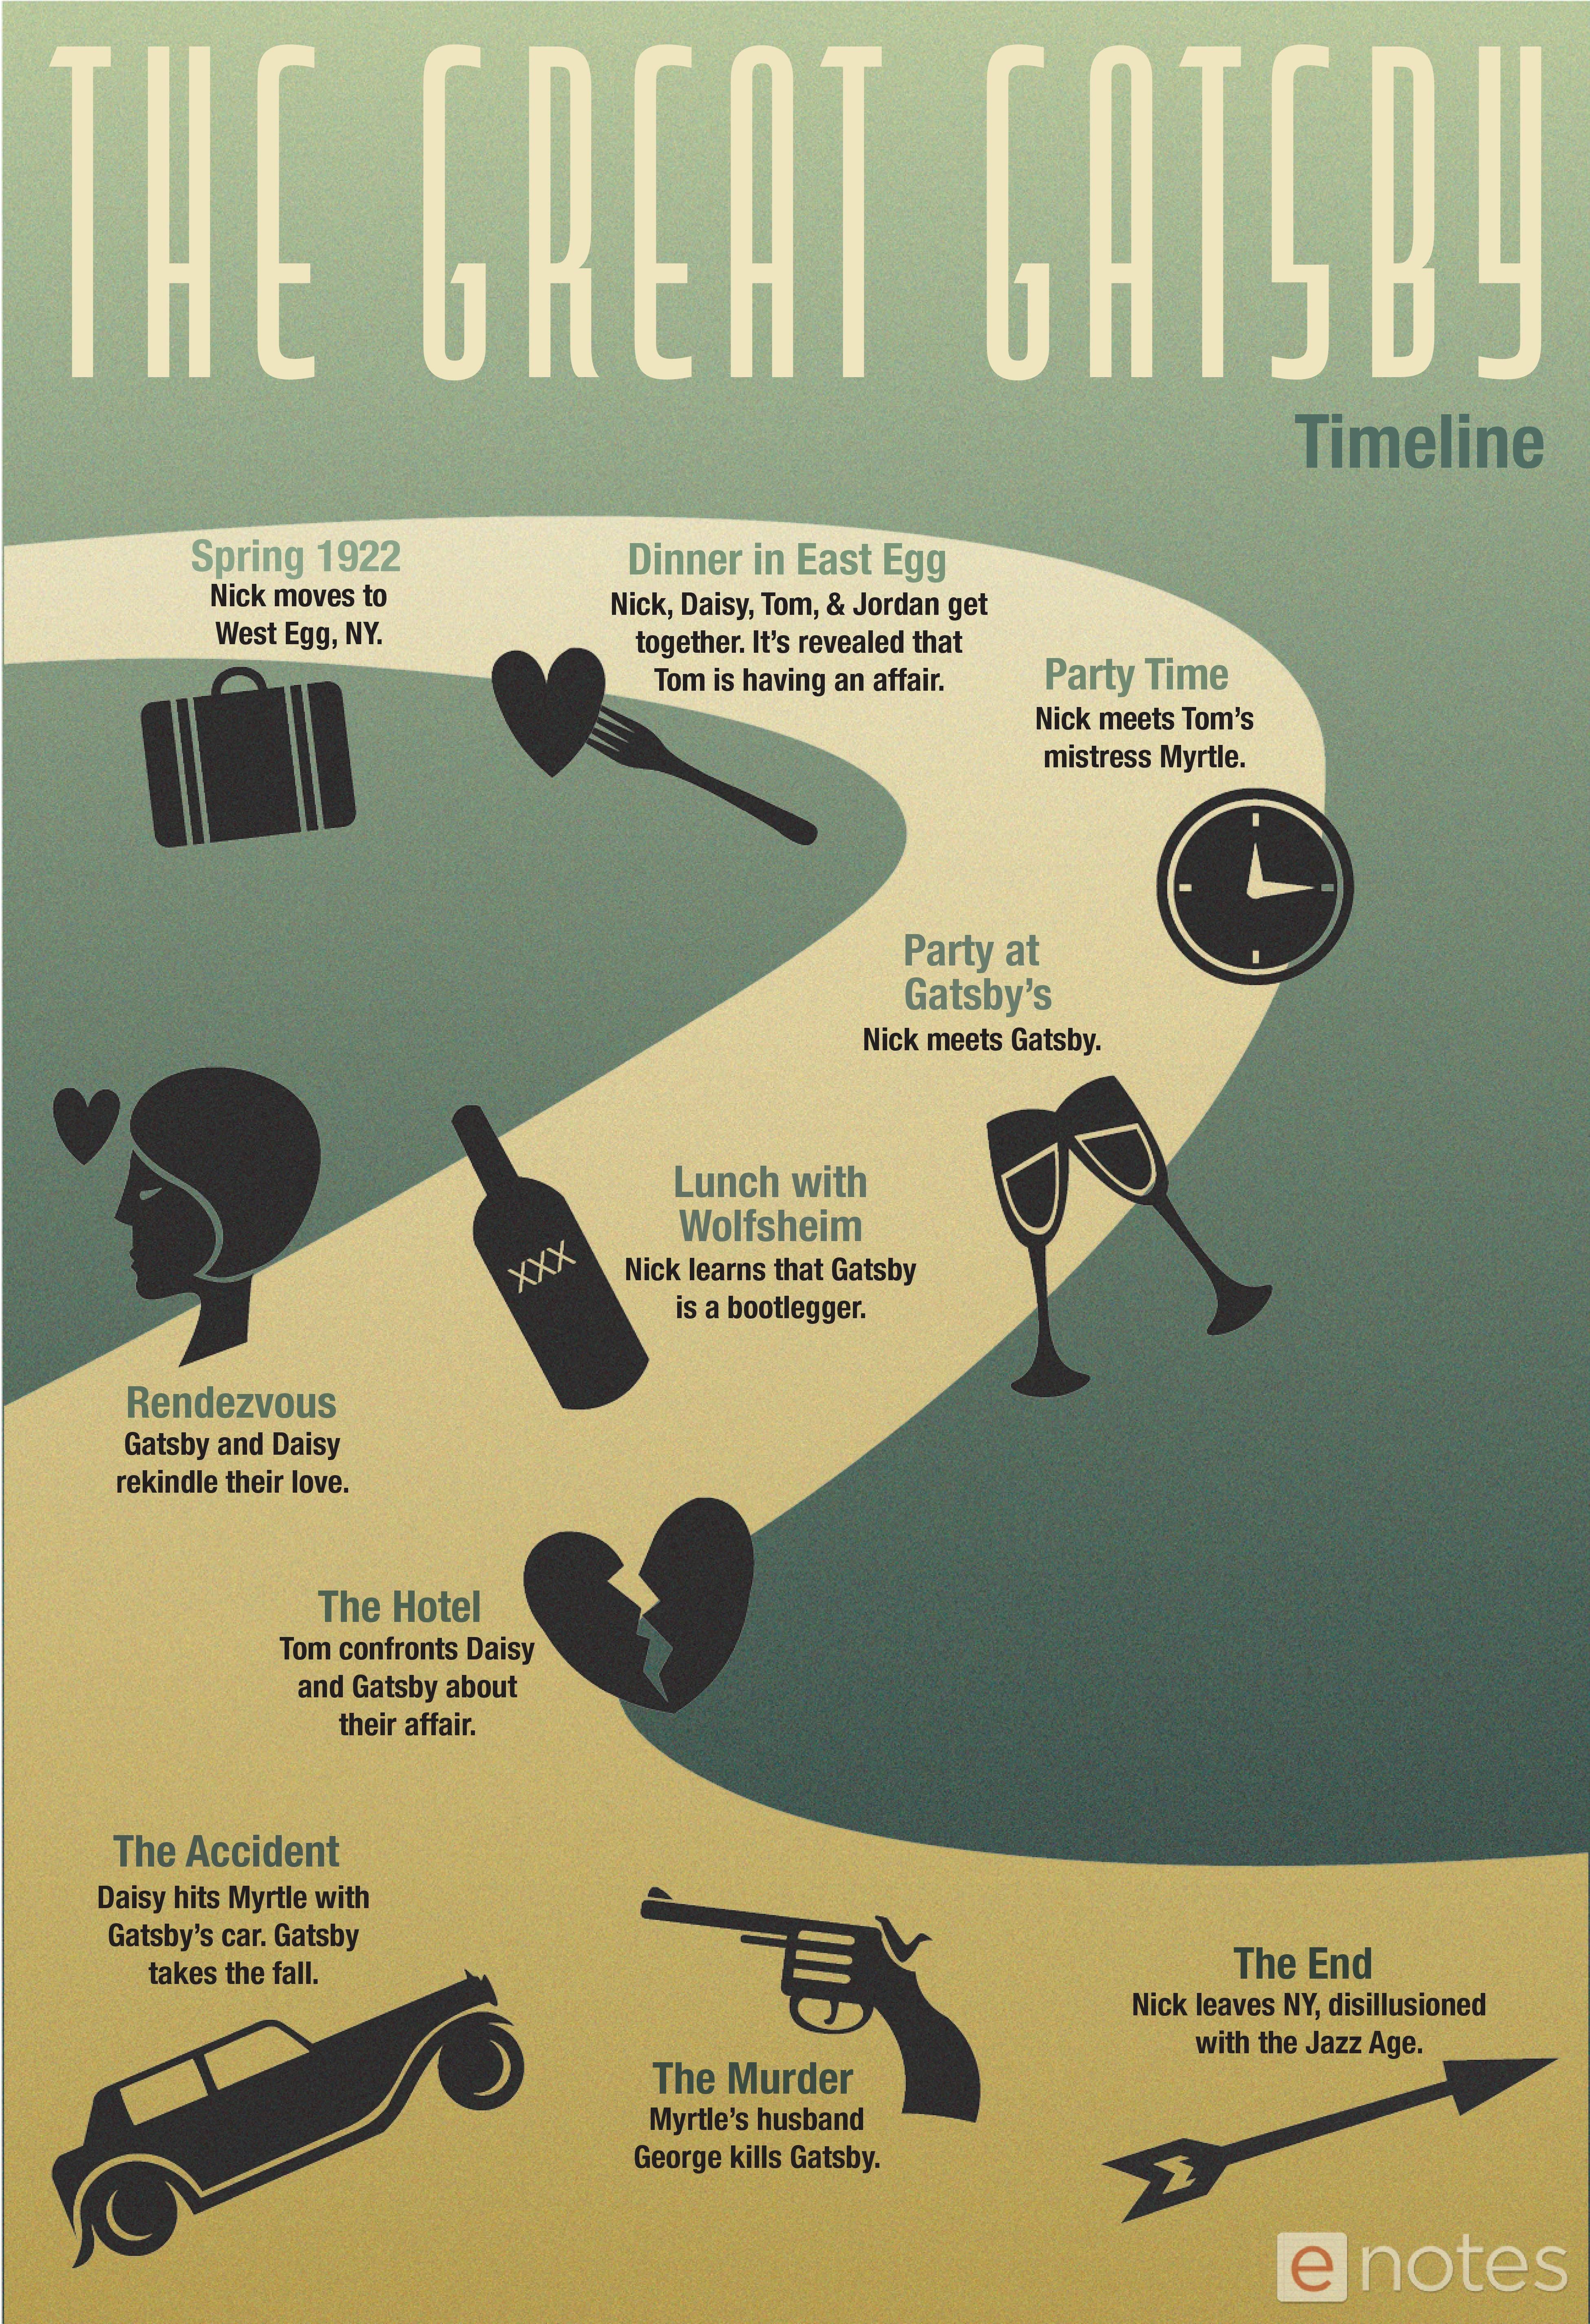 Download This Enotes Original Timeline Infographic Of The